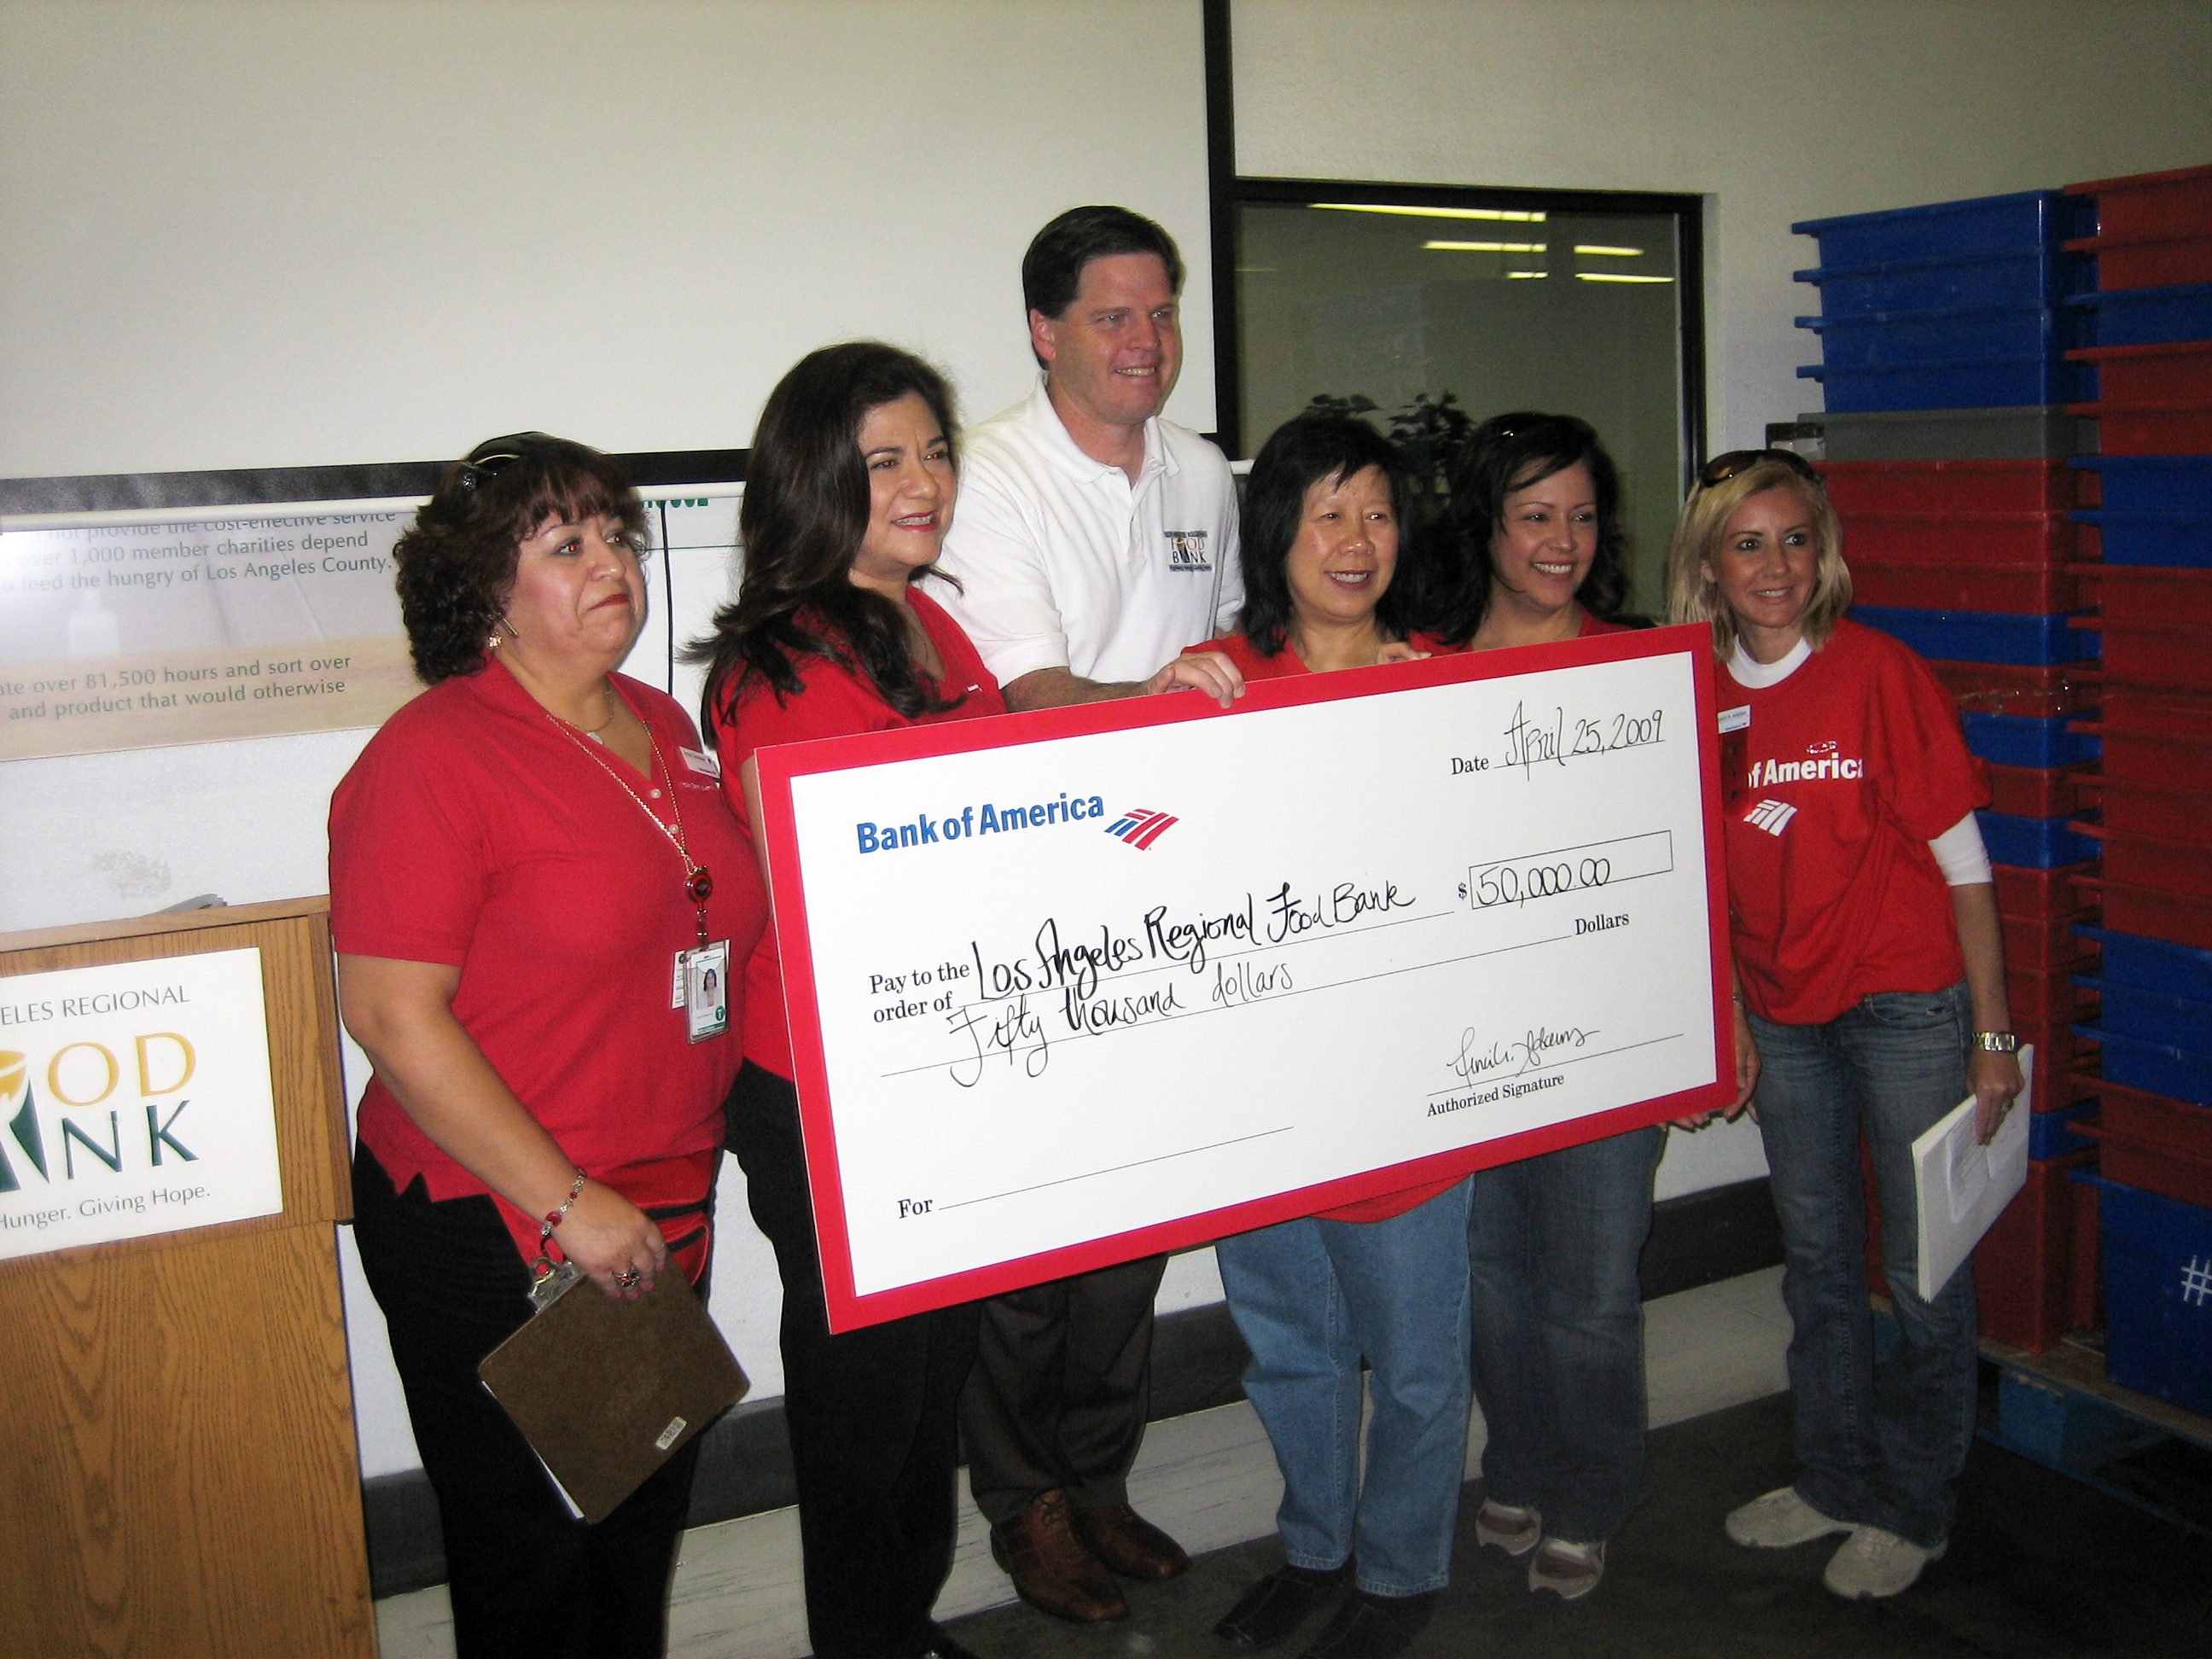 L.A. Regional Foodbank President and CEO Michael Flood receives a check for $50,000 from Bank of America.